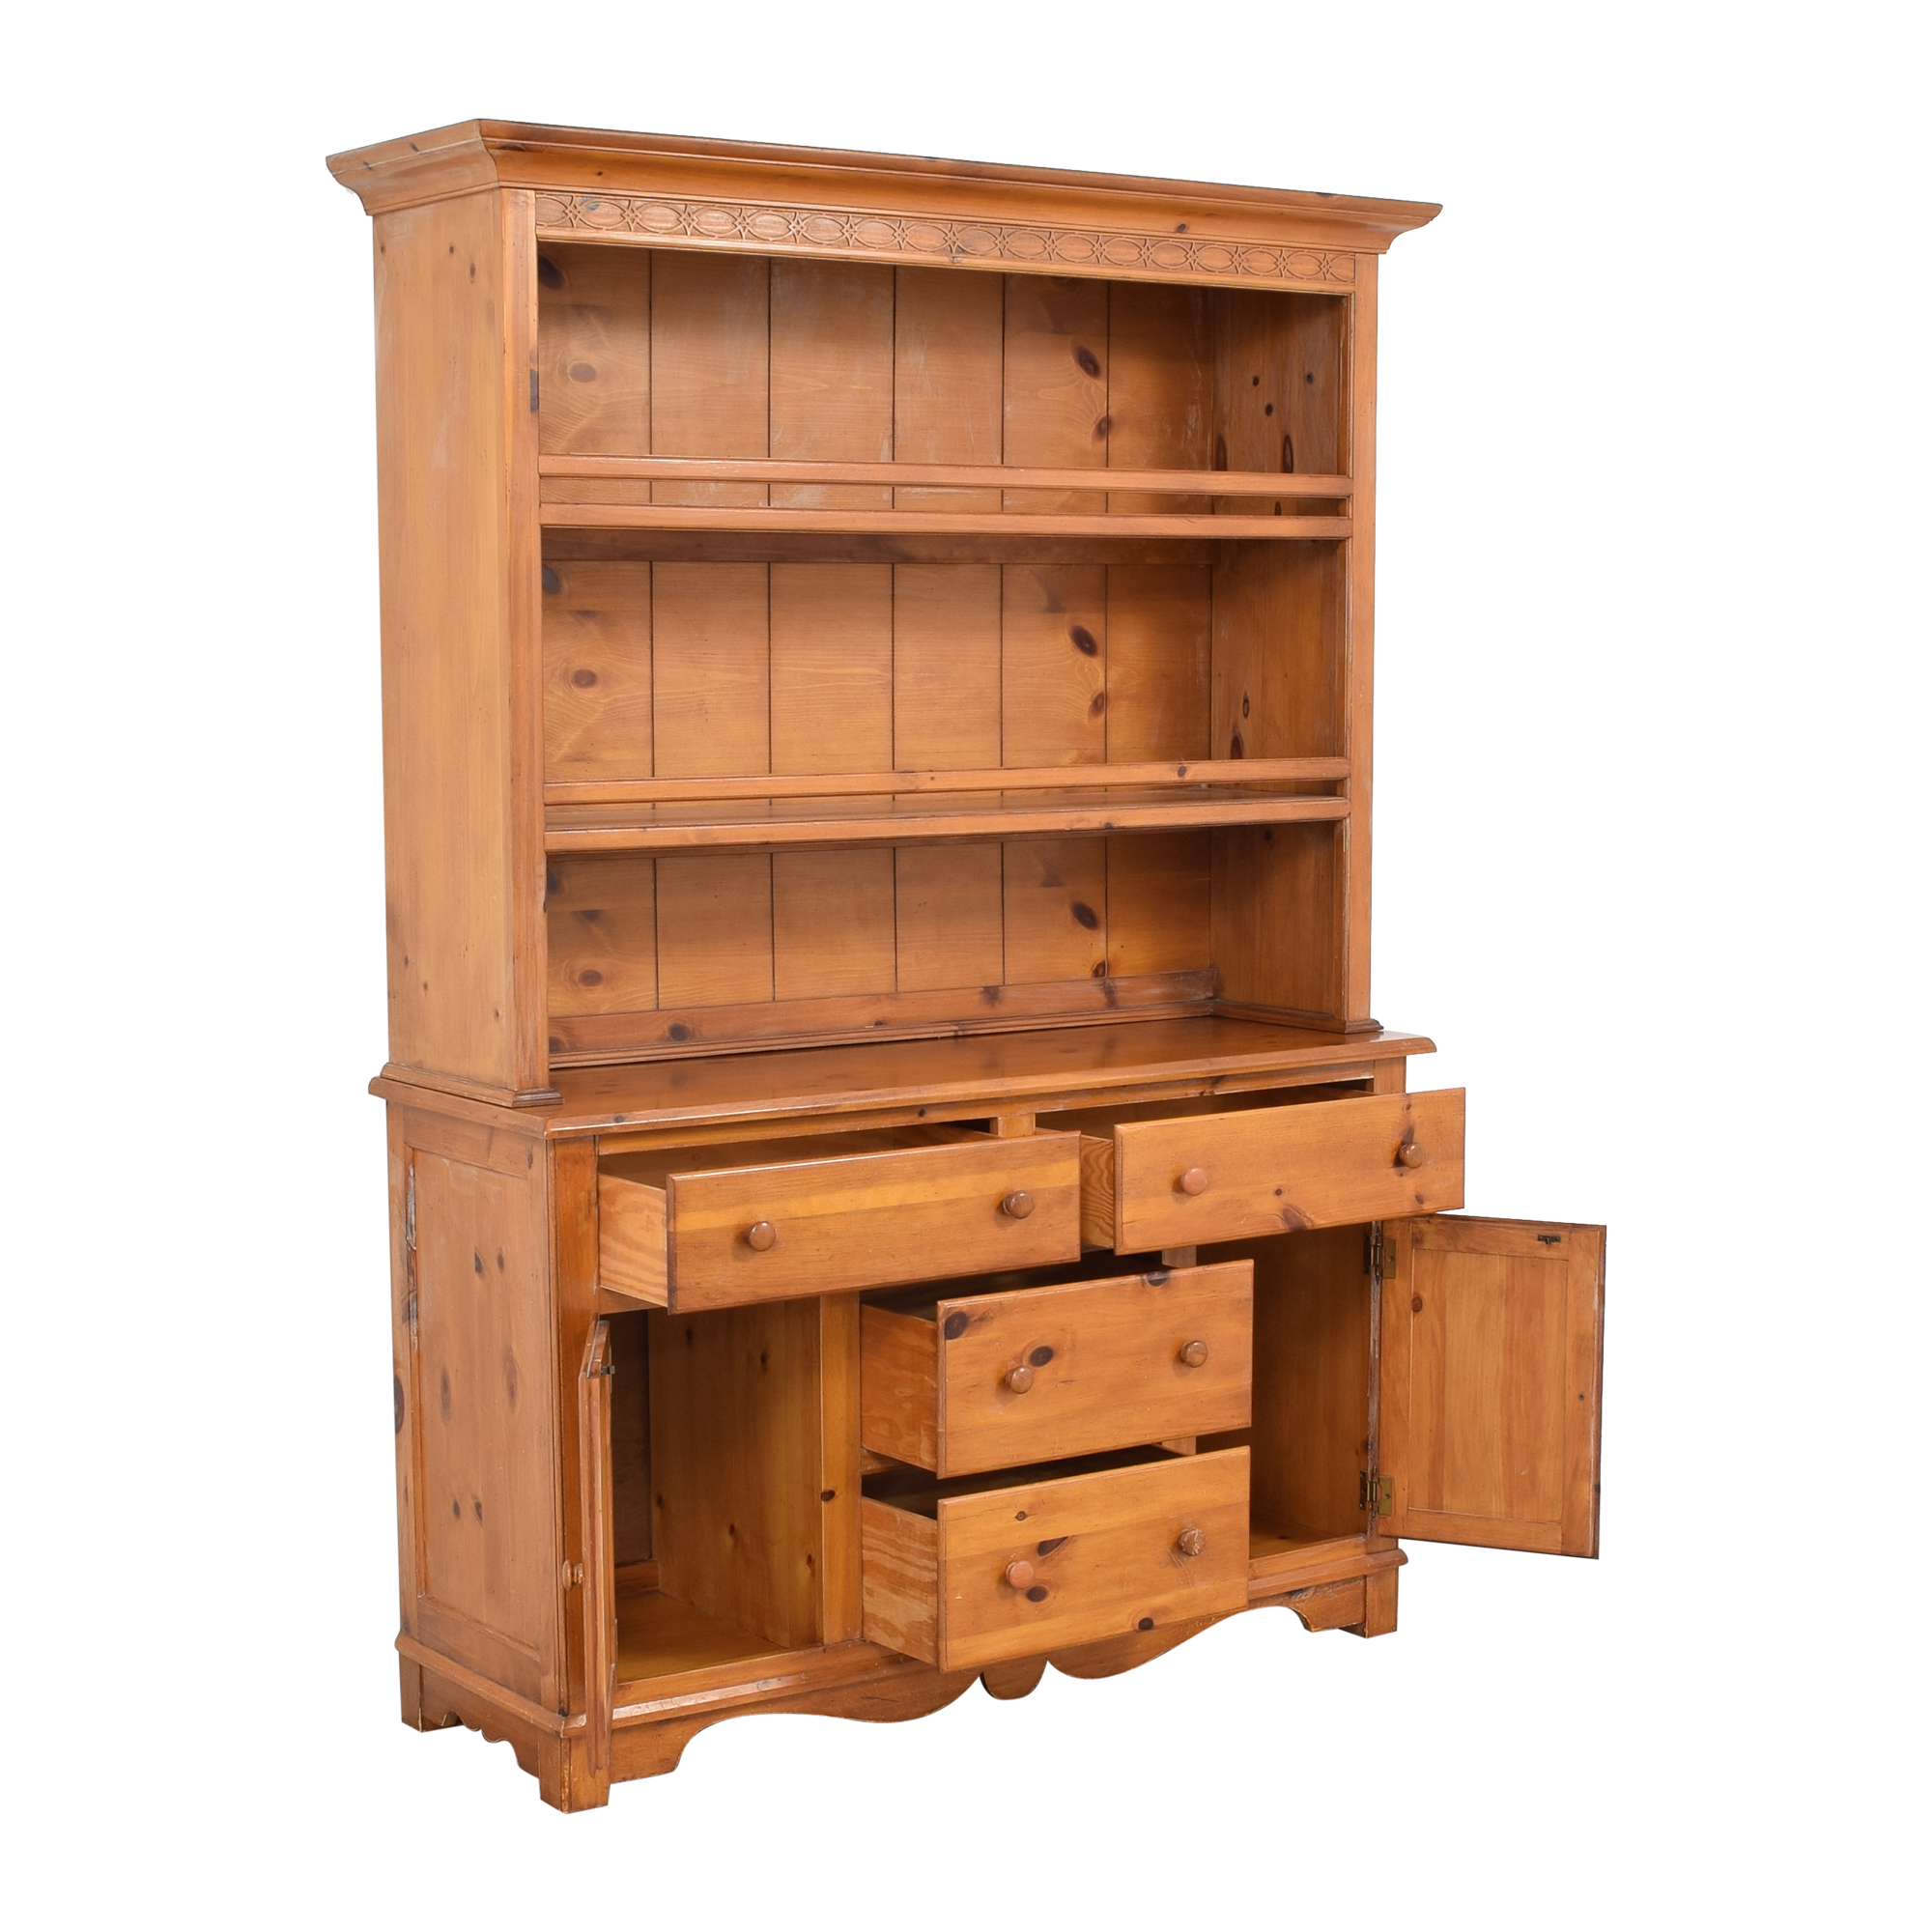 The Guild Hall Cabinet with Hutch Cabinets & Sideboards